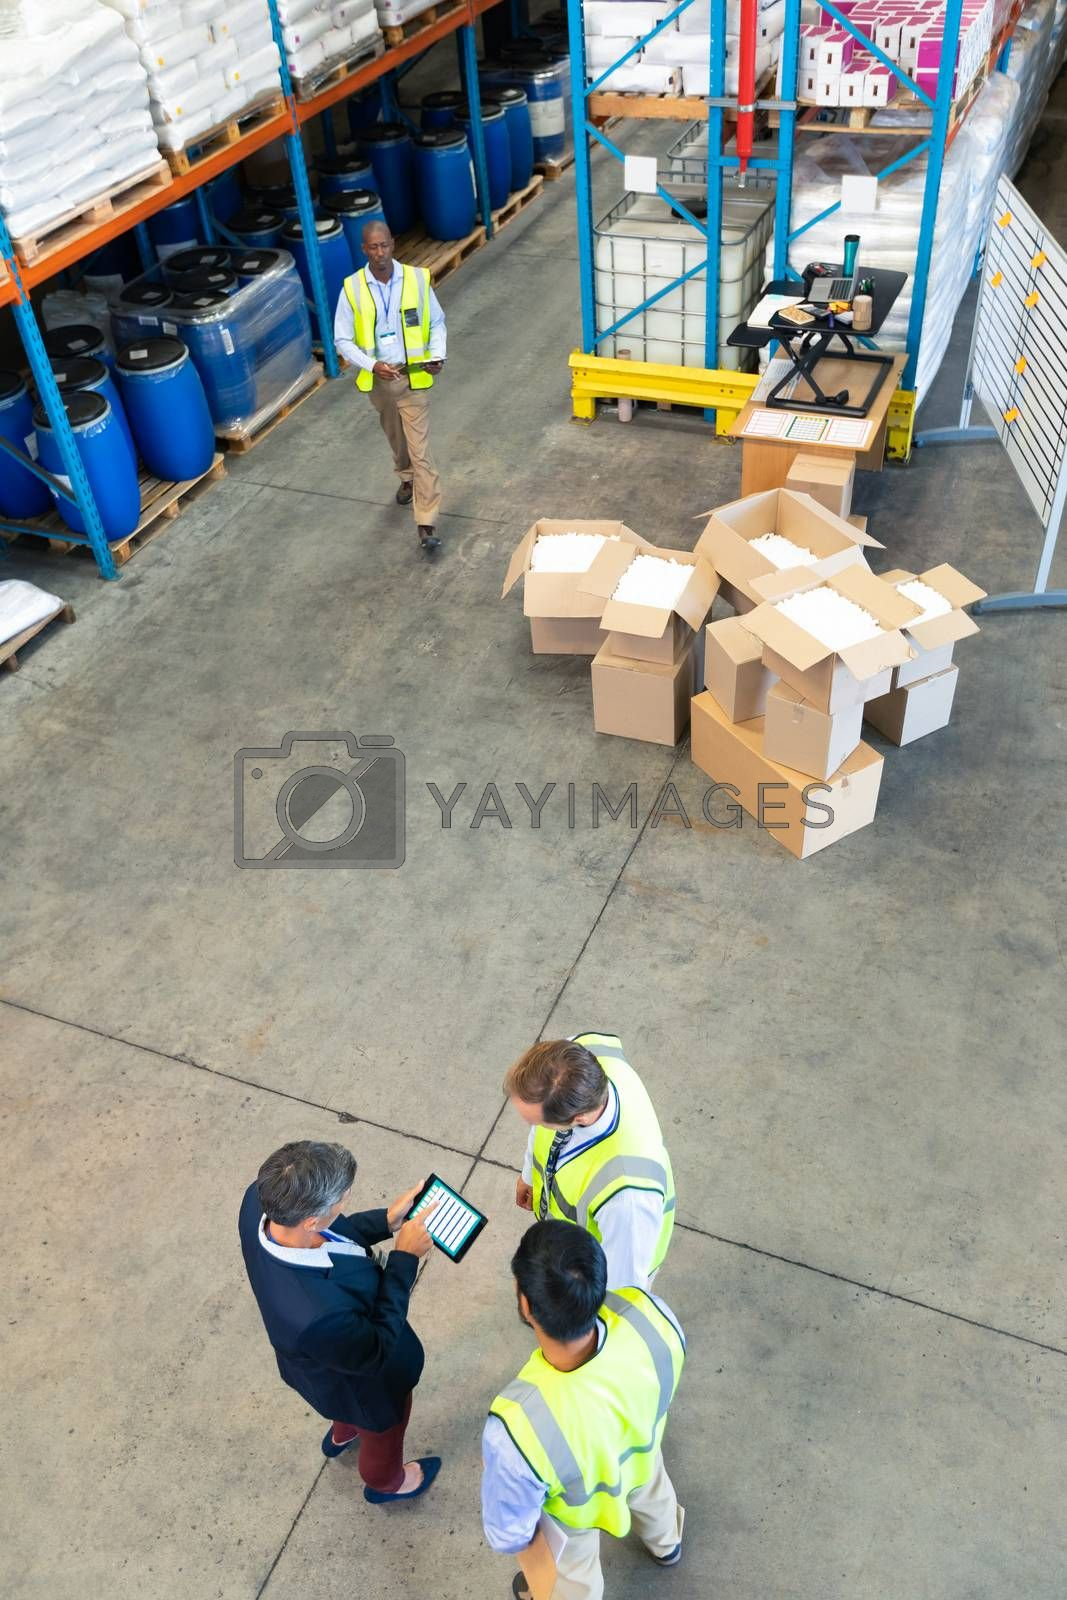 High angle view of diverse mature warehouse staff discussing over digital tablet in warehouse. This is a freight transportation and distribution warehouse. Industrial and industrial workers concept